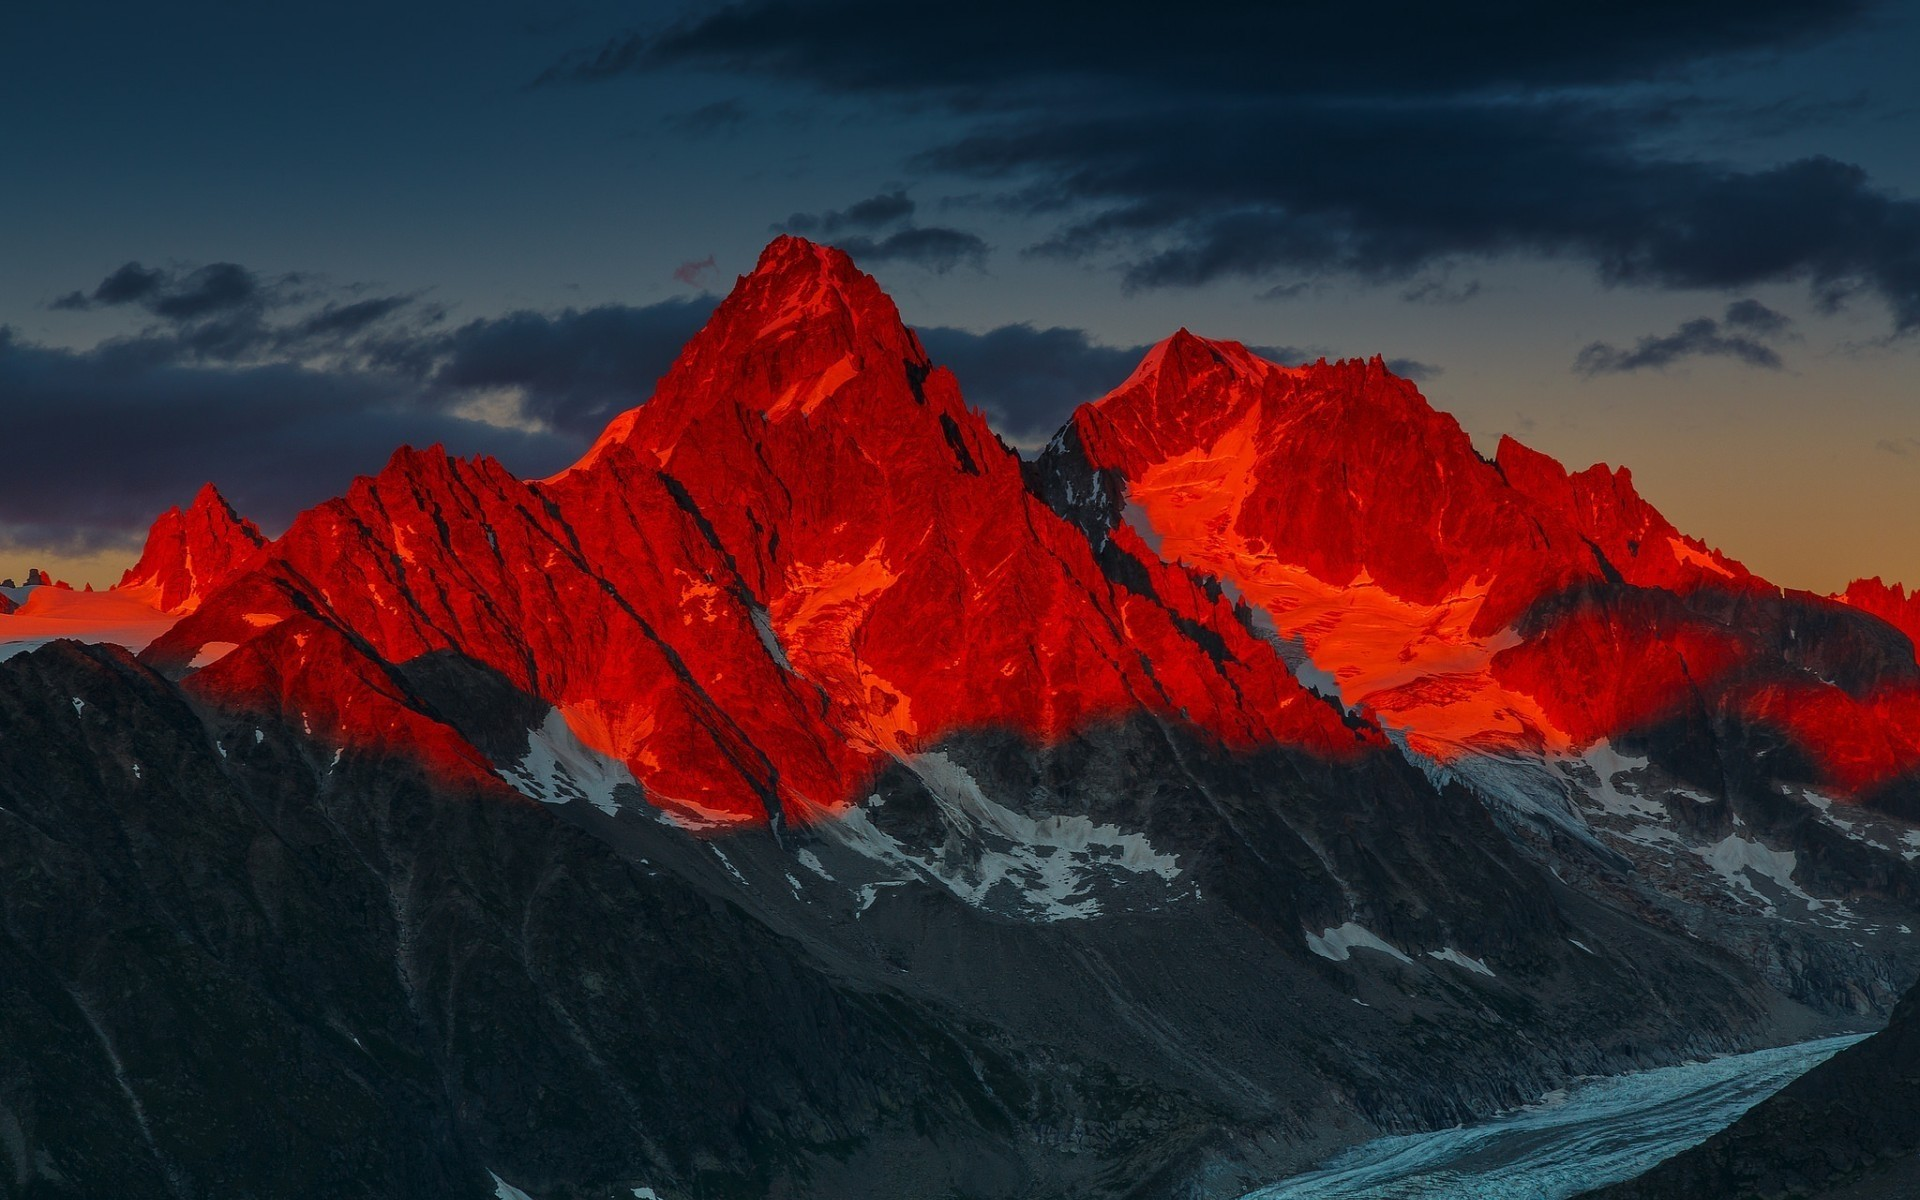 Red Sunset Over Mountains wallpaper thumb